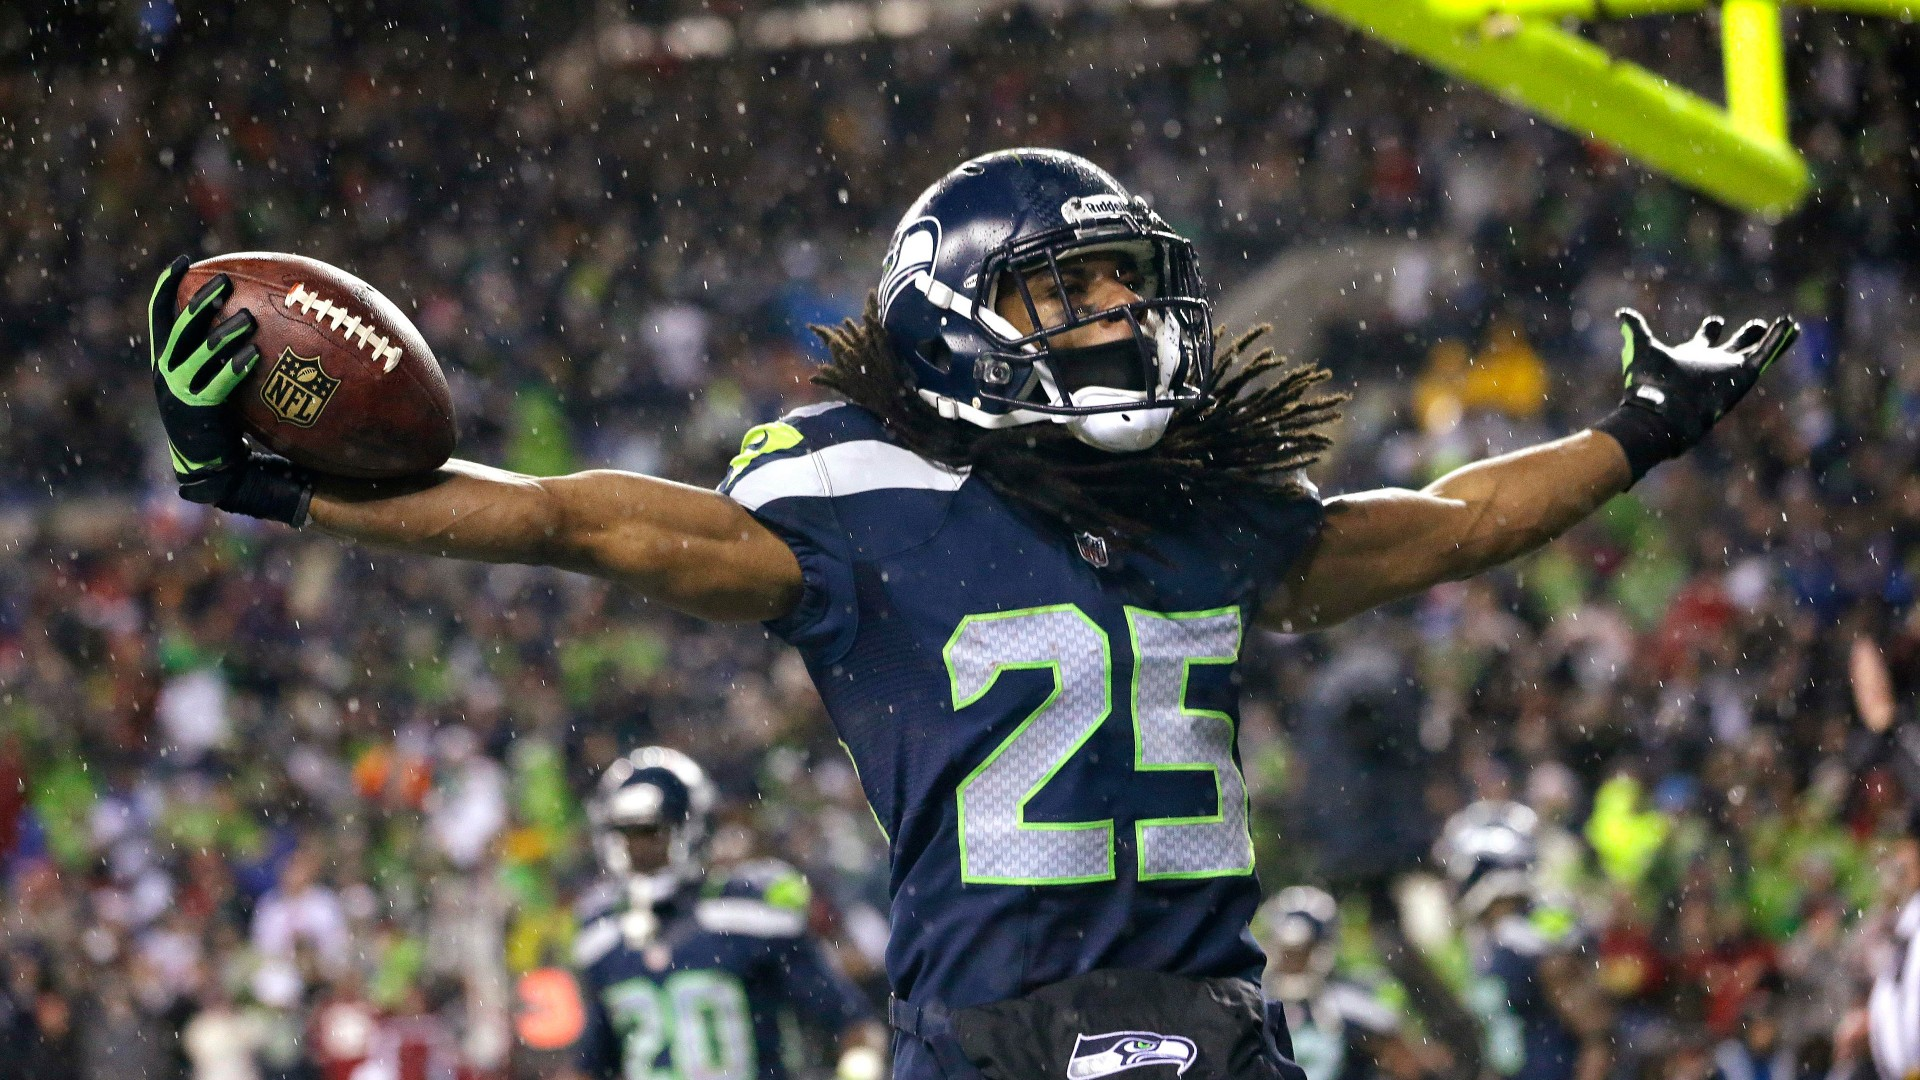 Wallpaper Richard Sherman, American football, NFL, Seattle ... | 1920 x 1080 jpeg 588kB